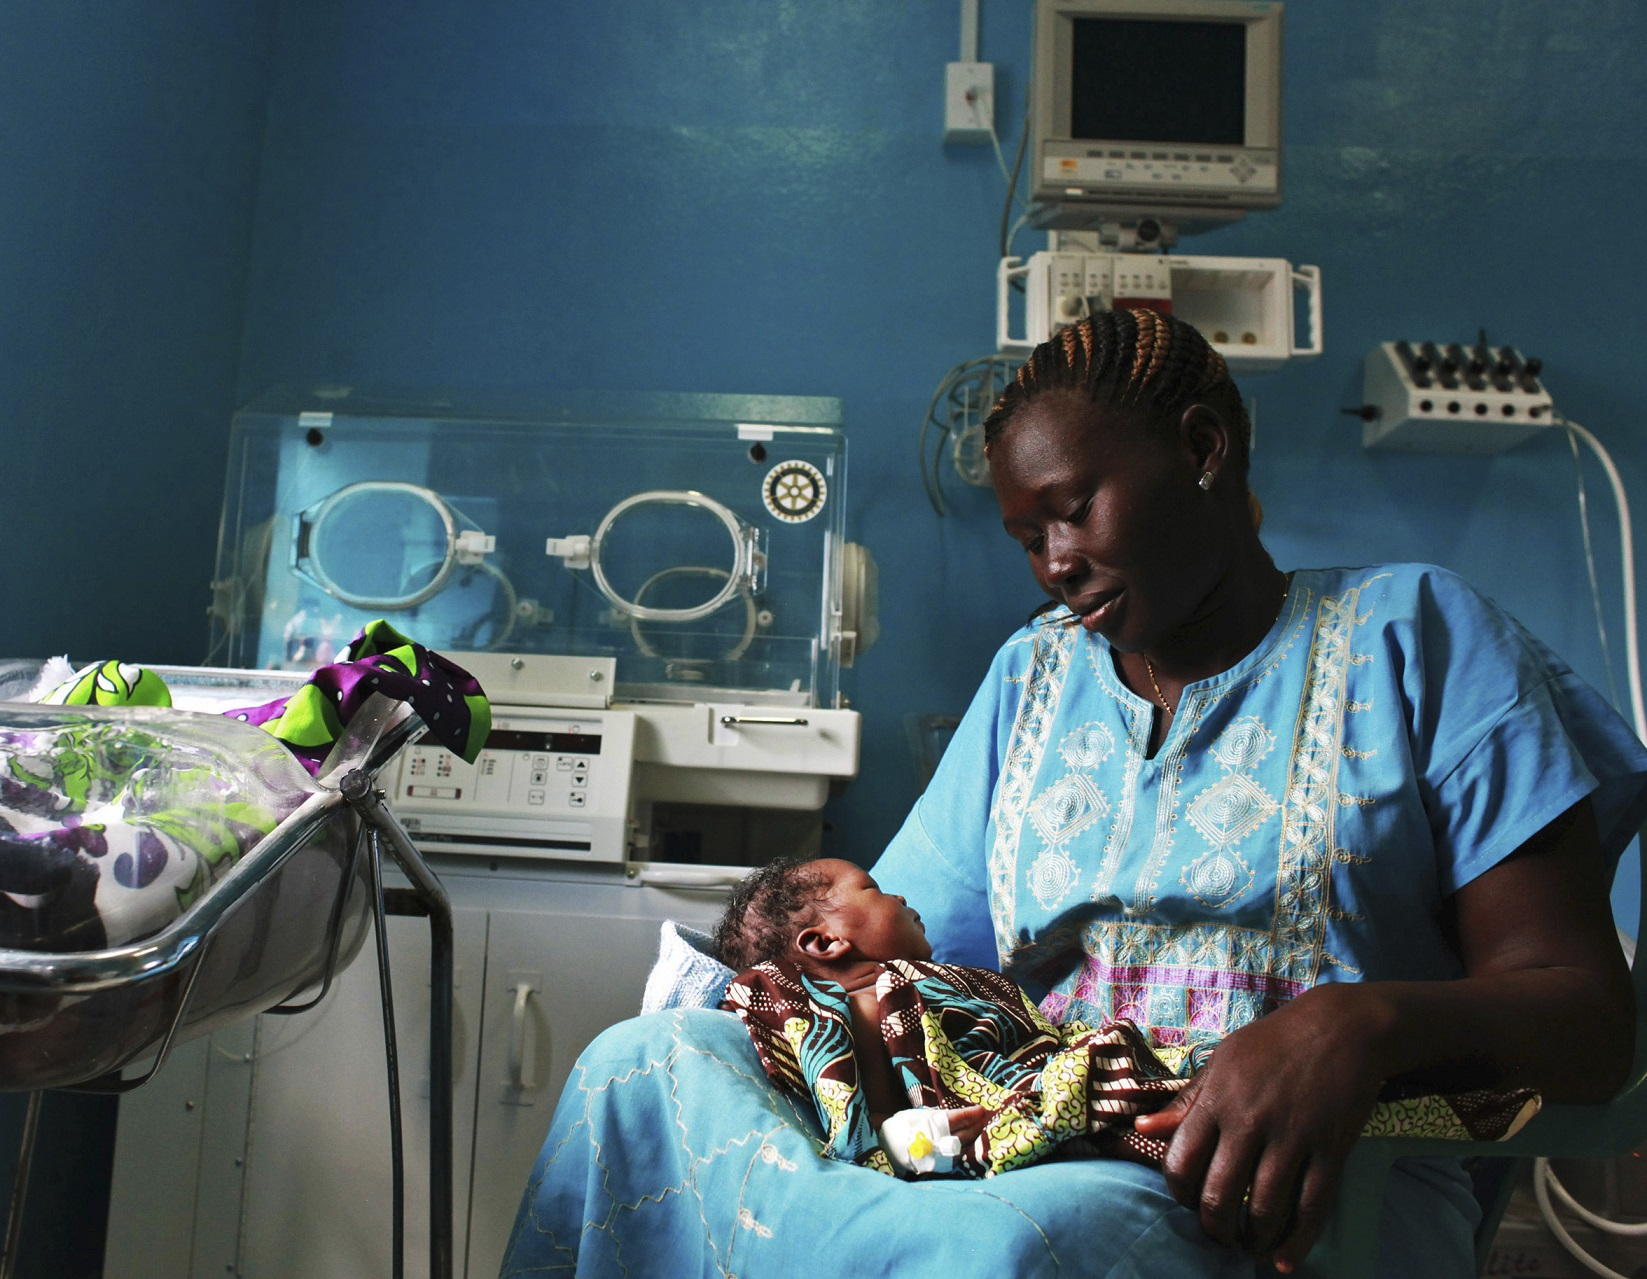 A woman holds her newborn baby in a nursery at the Juba Teaching Hospital in Juba April 3, 2013. Very few births in South Sudan, which has the highest maternal mortality rate in the world at 2,054 per 100,000 live births, are assisted by trained midwives, according to the UNDP's website. Picture taken April 3, 2013. REUTERS/Andreea Campeanu (SOUTH SUDAN - Tags: SOCIETY HEALTH) - GM1E94416HS01